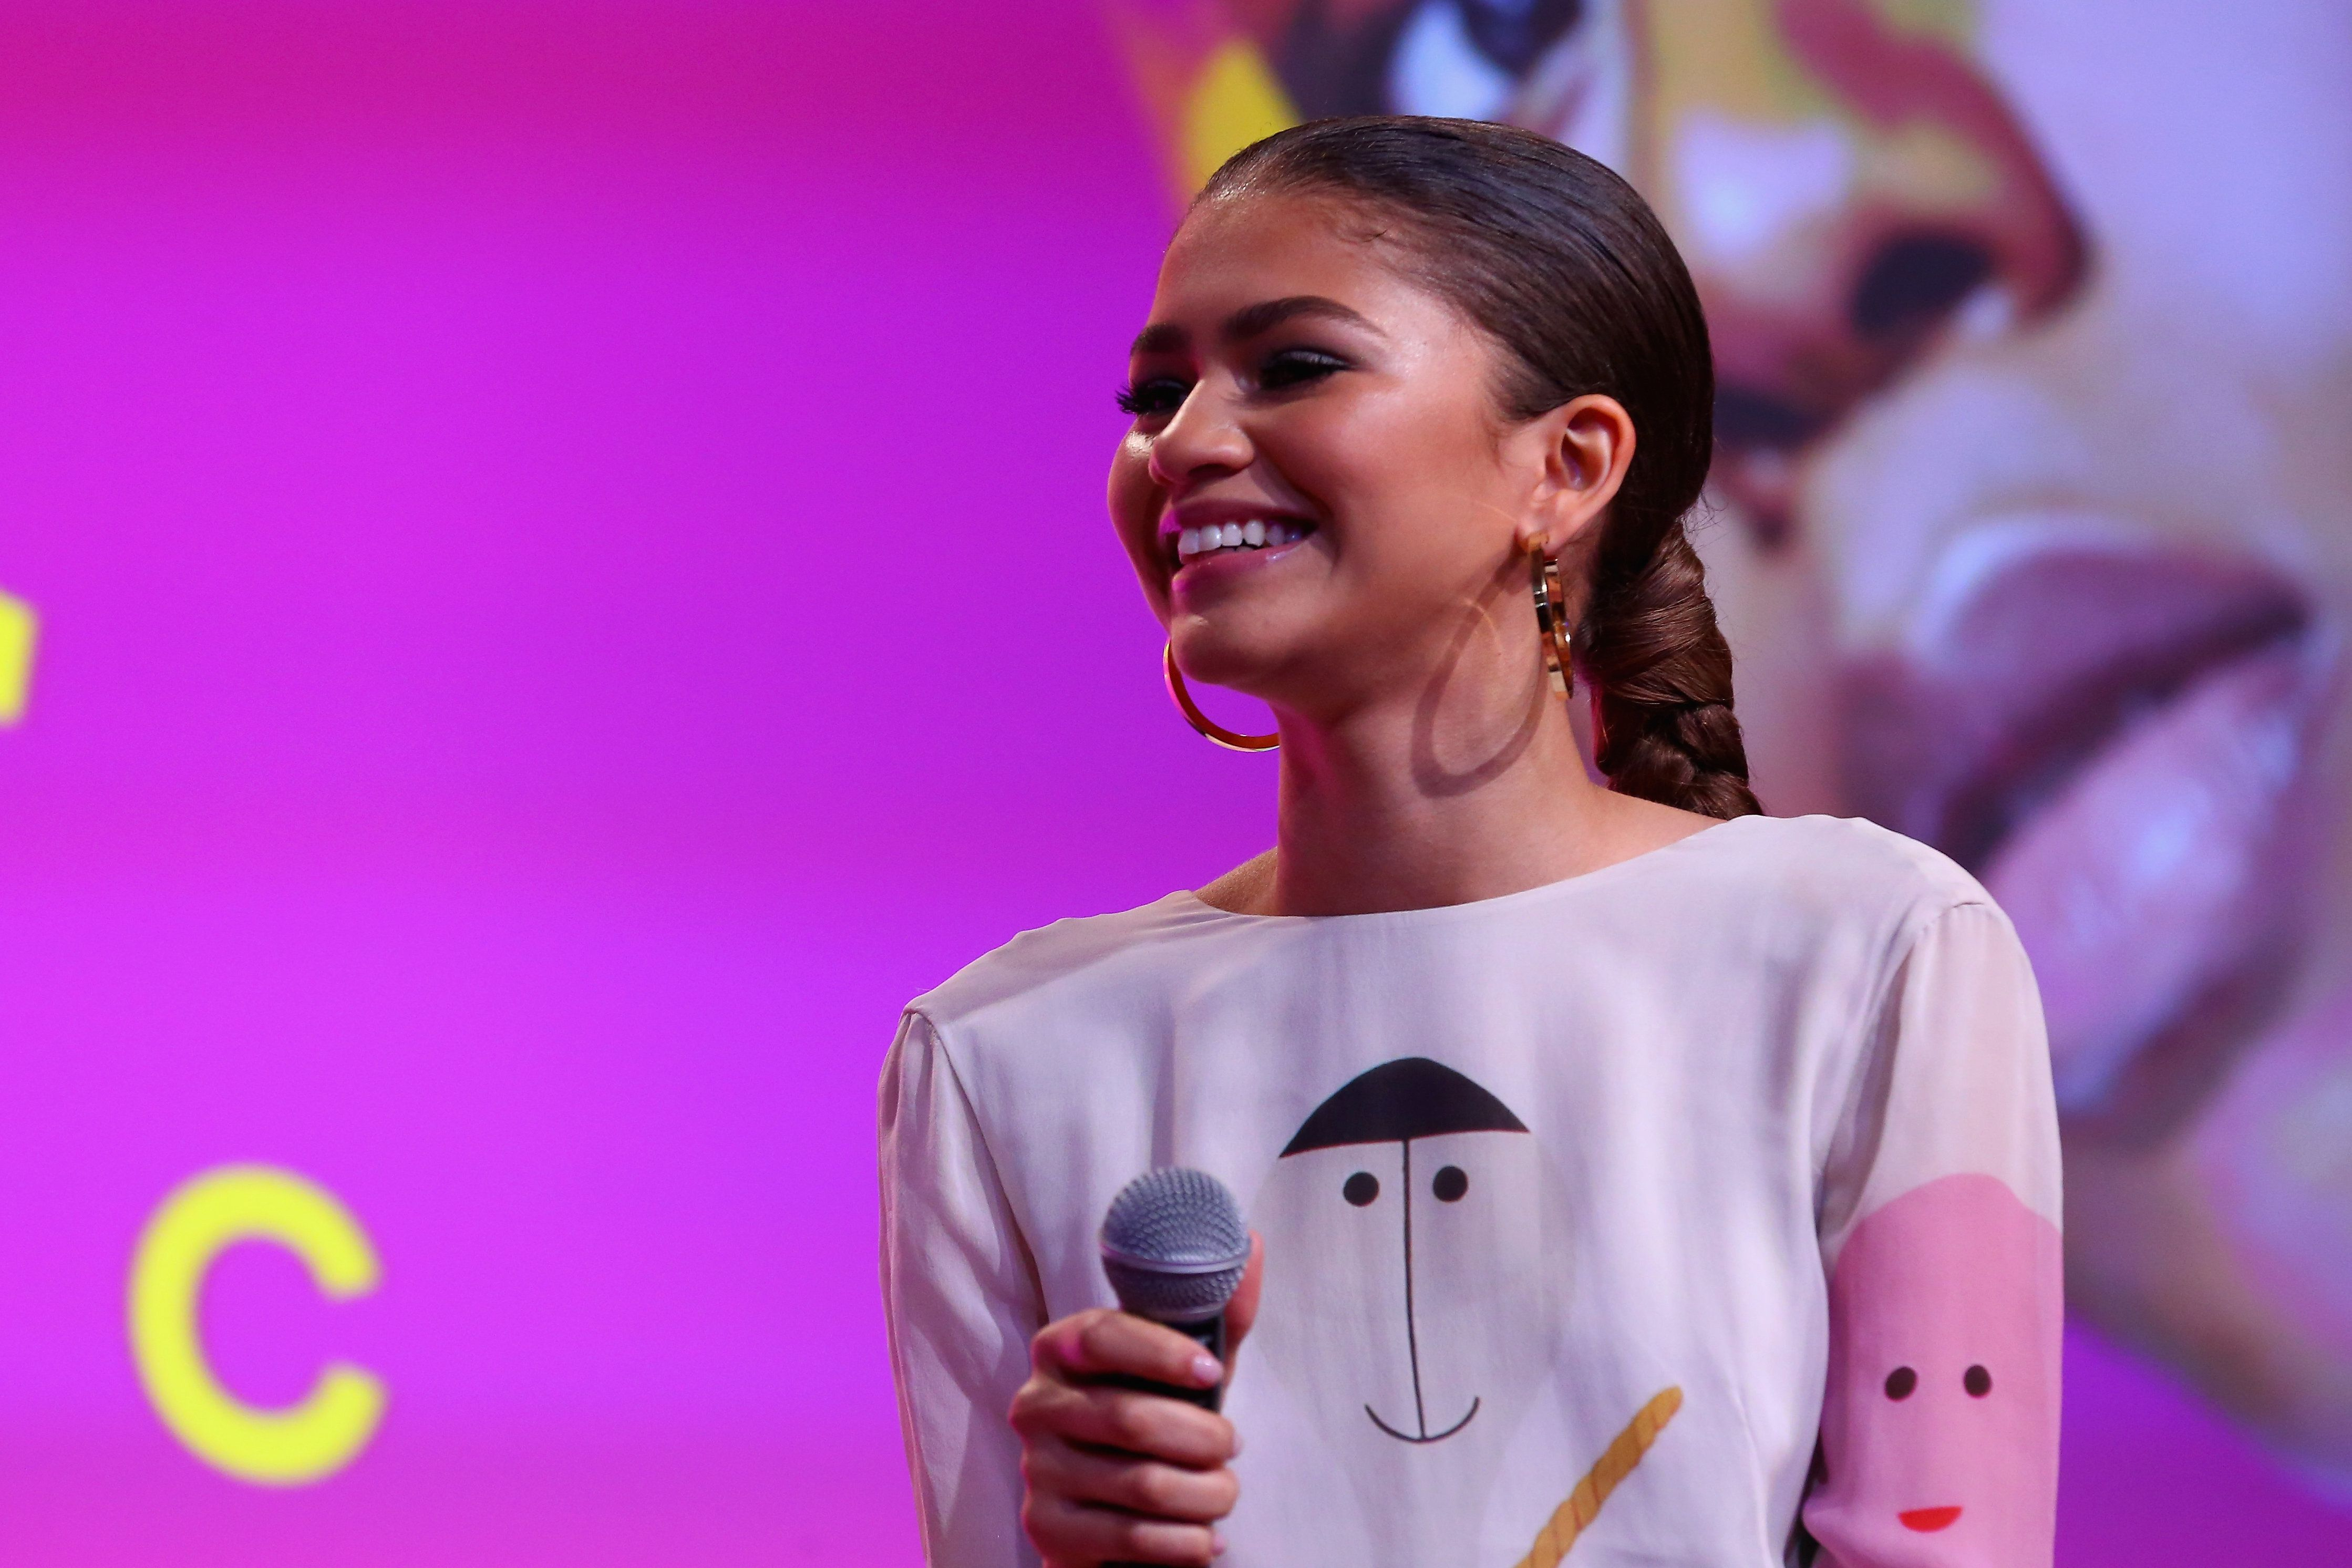 NEW YORK, NY - APRIL 22:  Actor Zendaya speaks on a panel during Beautycon Festival NYC 2018 - Day 2 at Jacob Javits Center on April 22, 2018 in New York City.  (Photo by Paul Zimmerman/Getty Images for Beautycon)